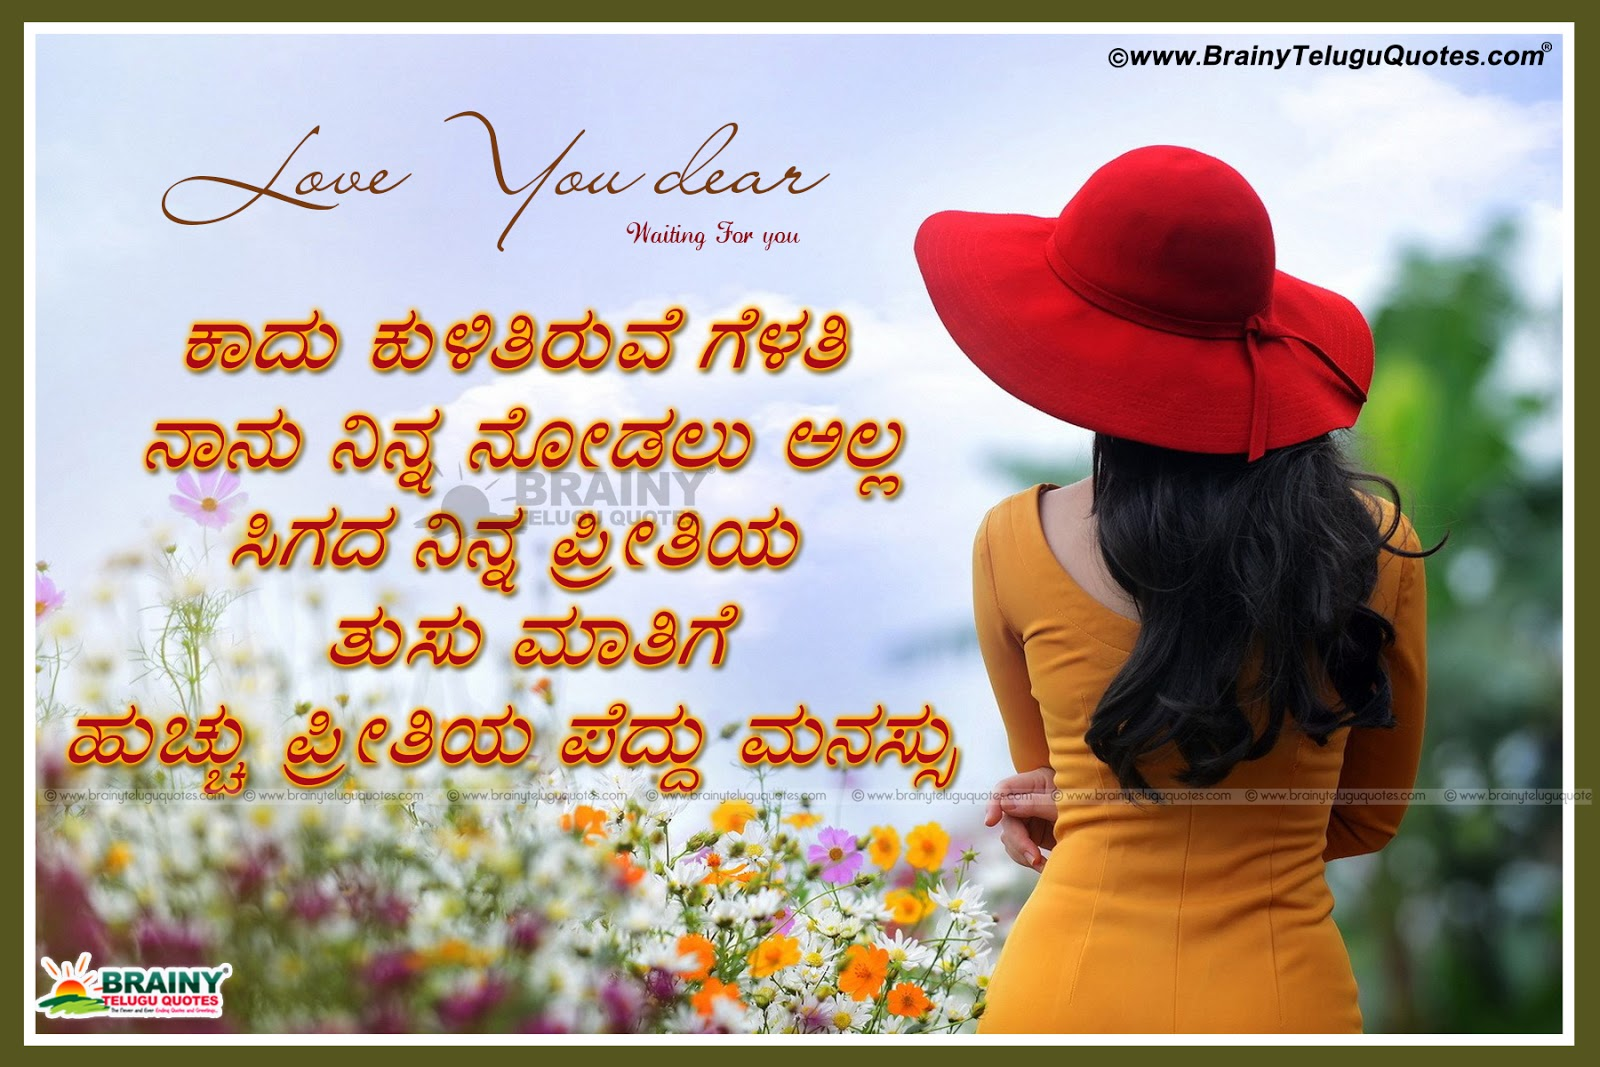 Sad Quotes About Love In Kannada : quotes in Kannada,Love failure quotes in Kannada,Sad Kannada Quotes ...